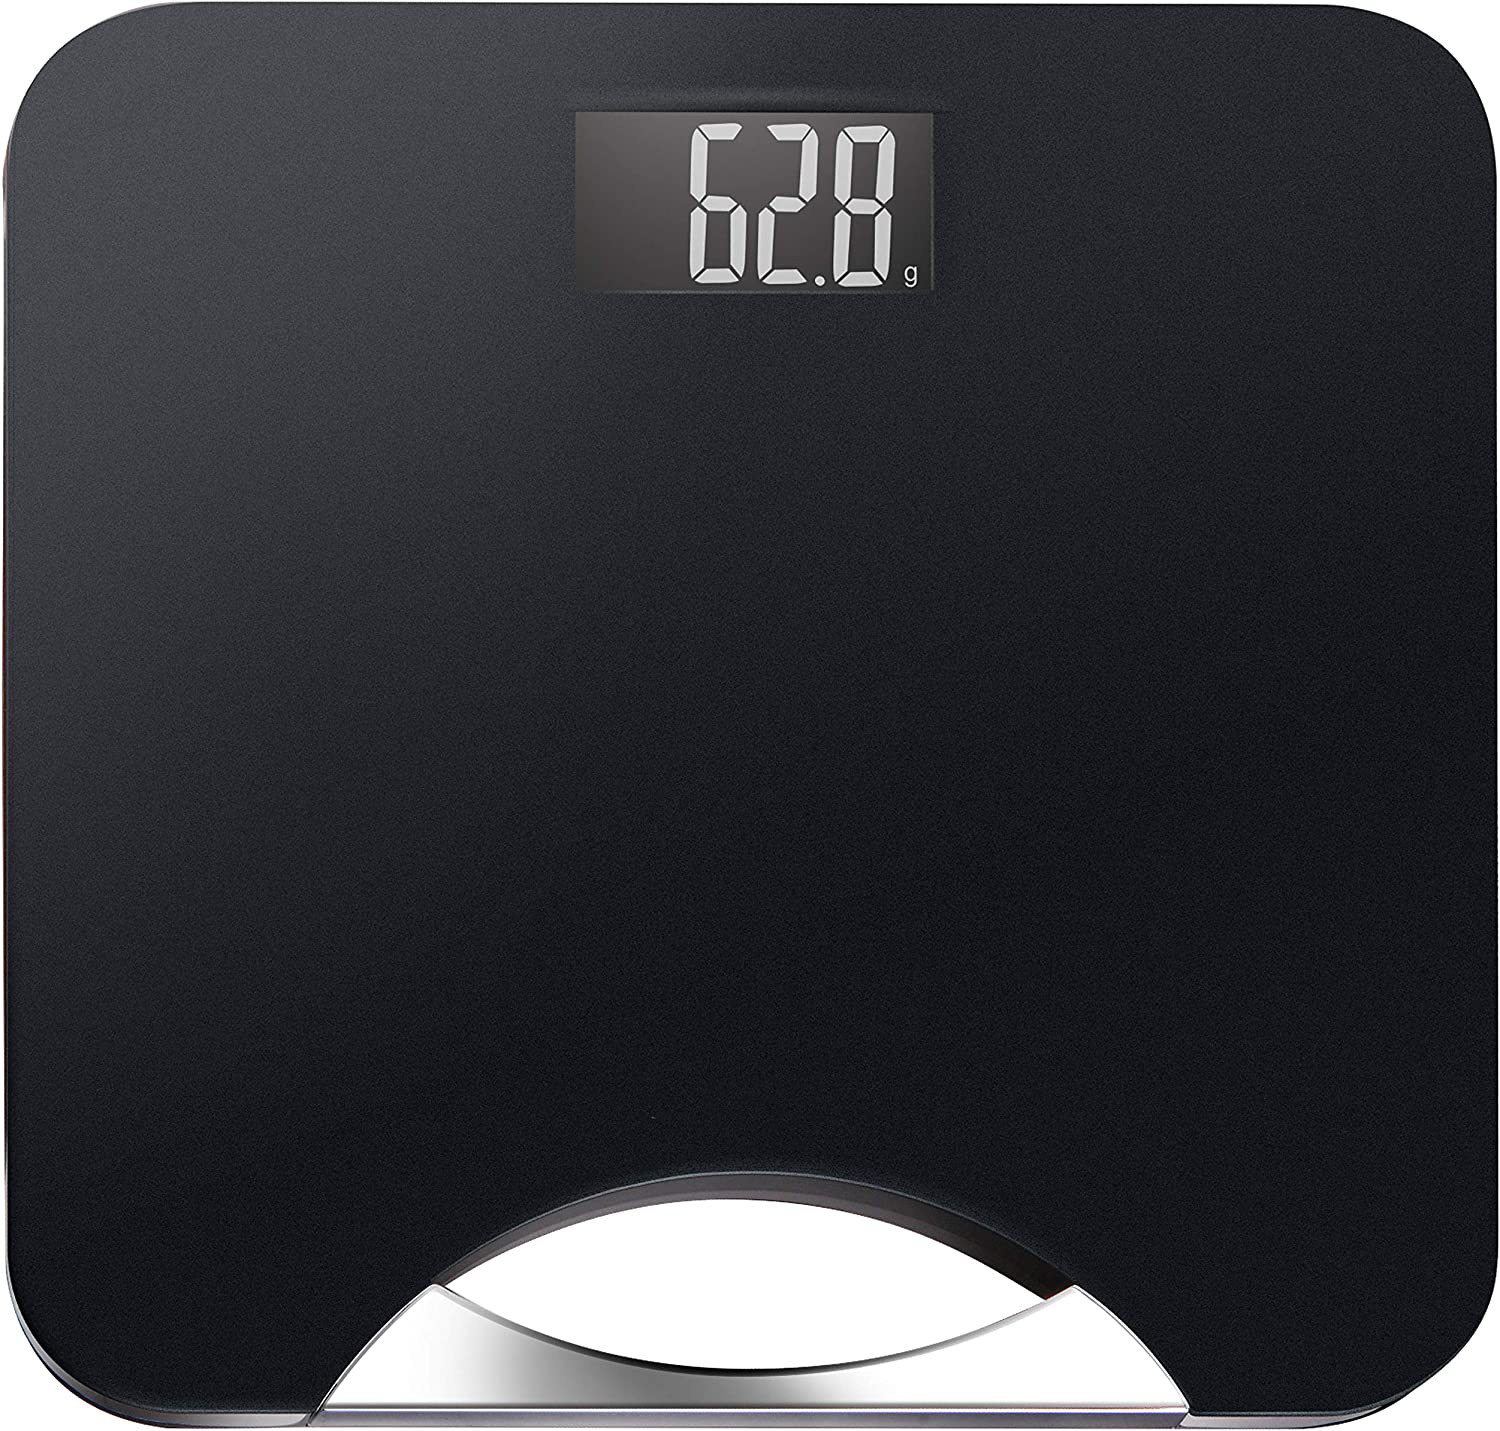 Optima Home Scales Si-400 Silhouette Cheap SALE Start Soldering Bathroom Blac Weight Scale